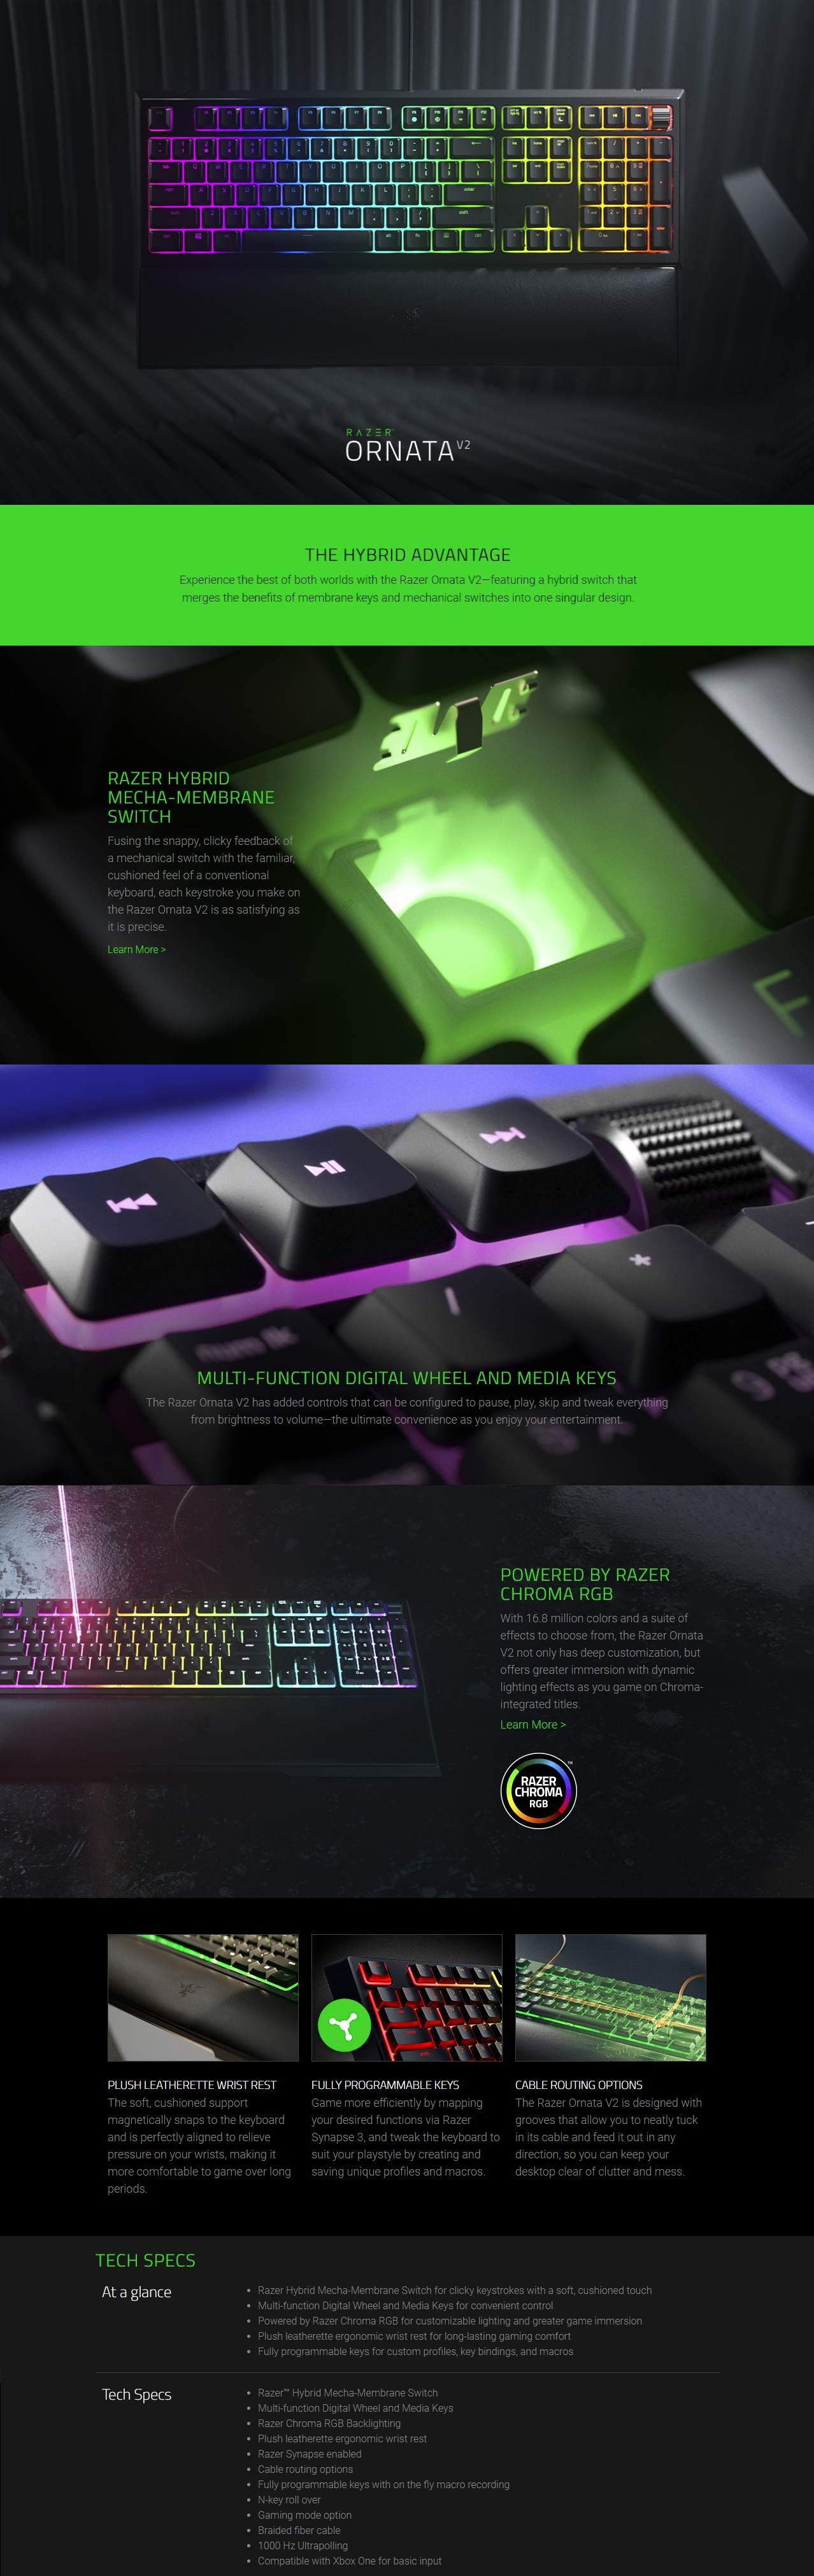 A large marketing image providing additional information about the product Razer Ornata Mecha-Membrane RGB Gaming Keyboard - Additional alt info not provided